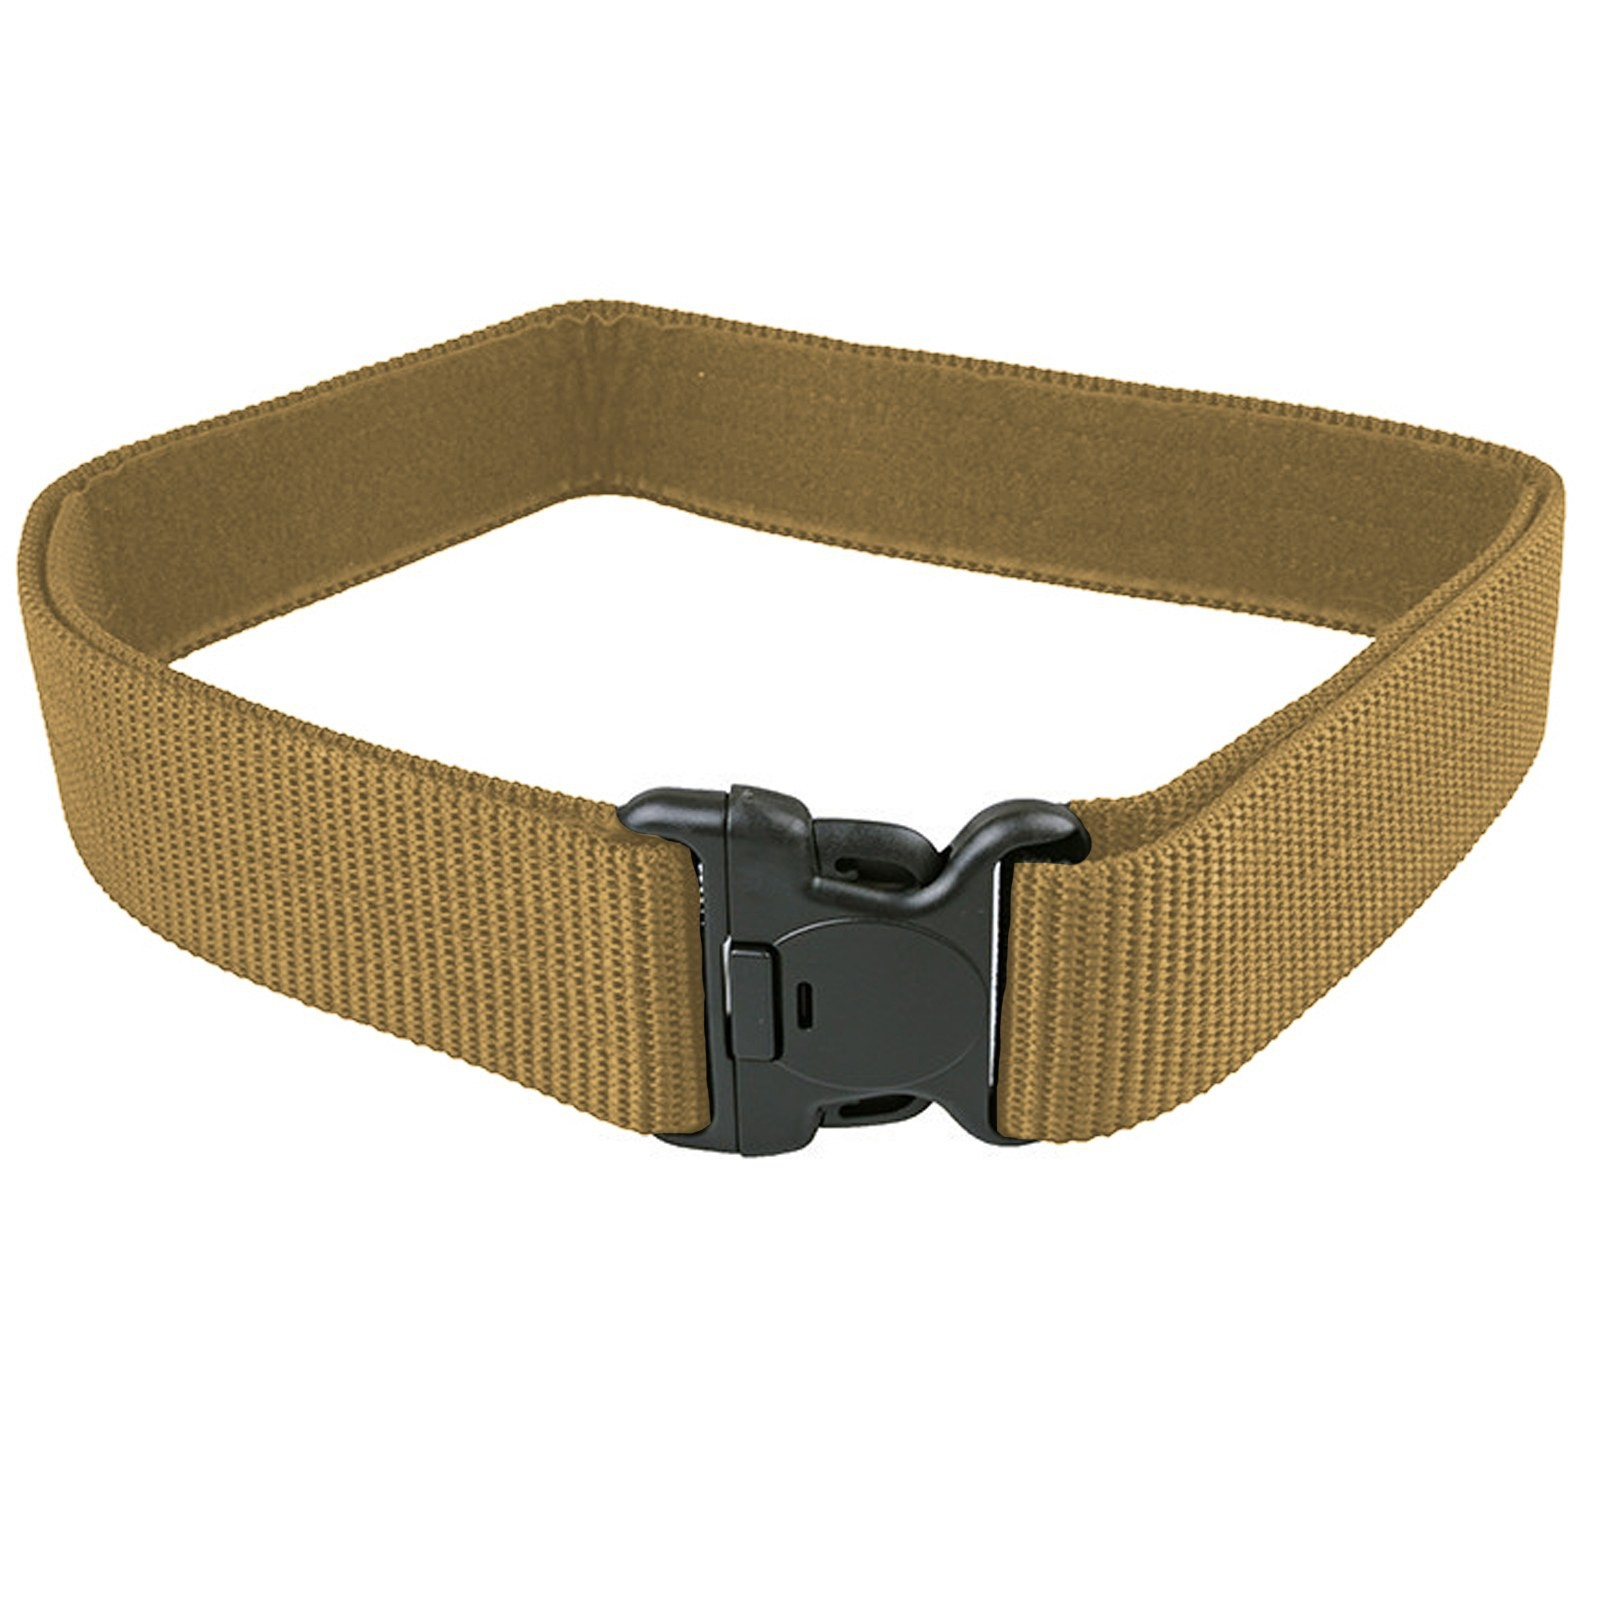 Cinturone Militare in Cordura Royal KR030